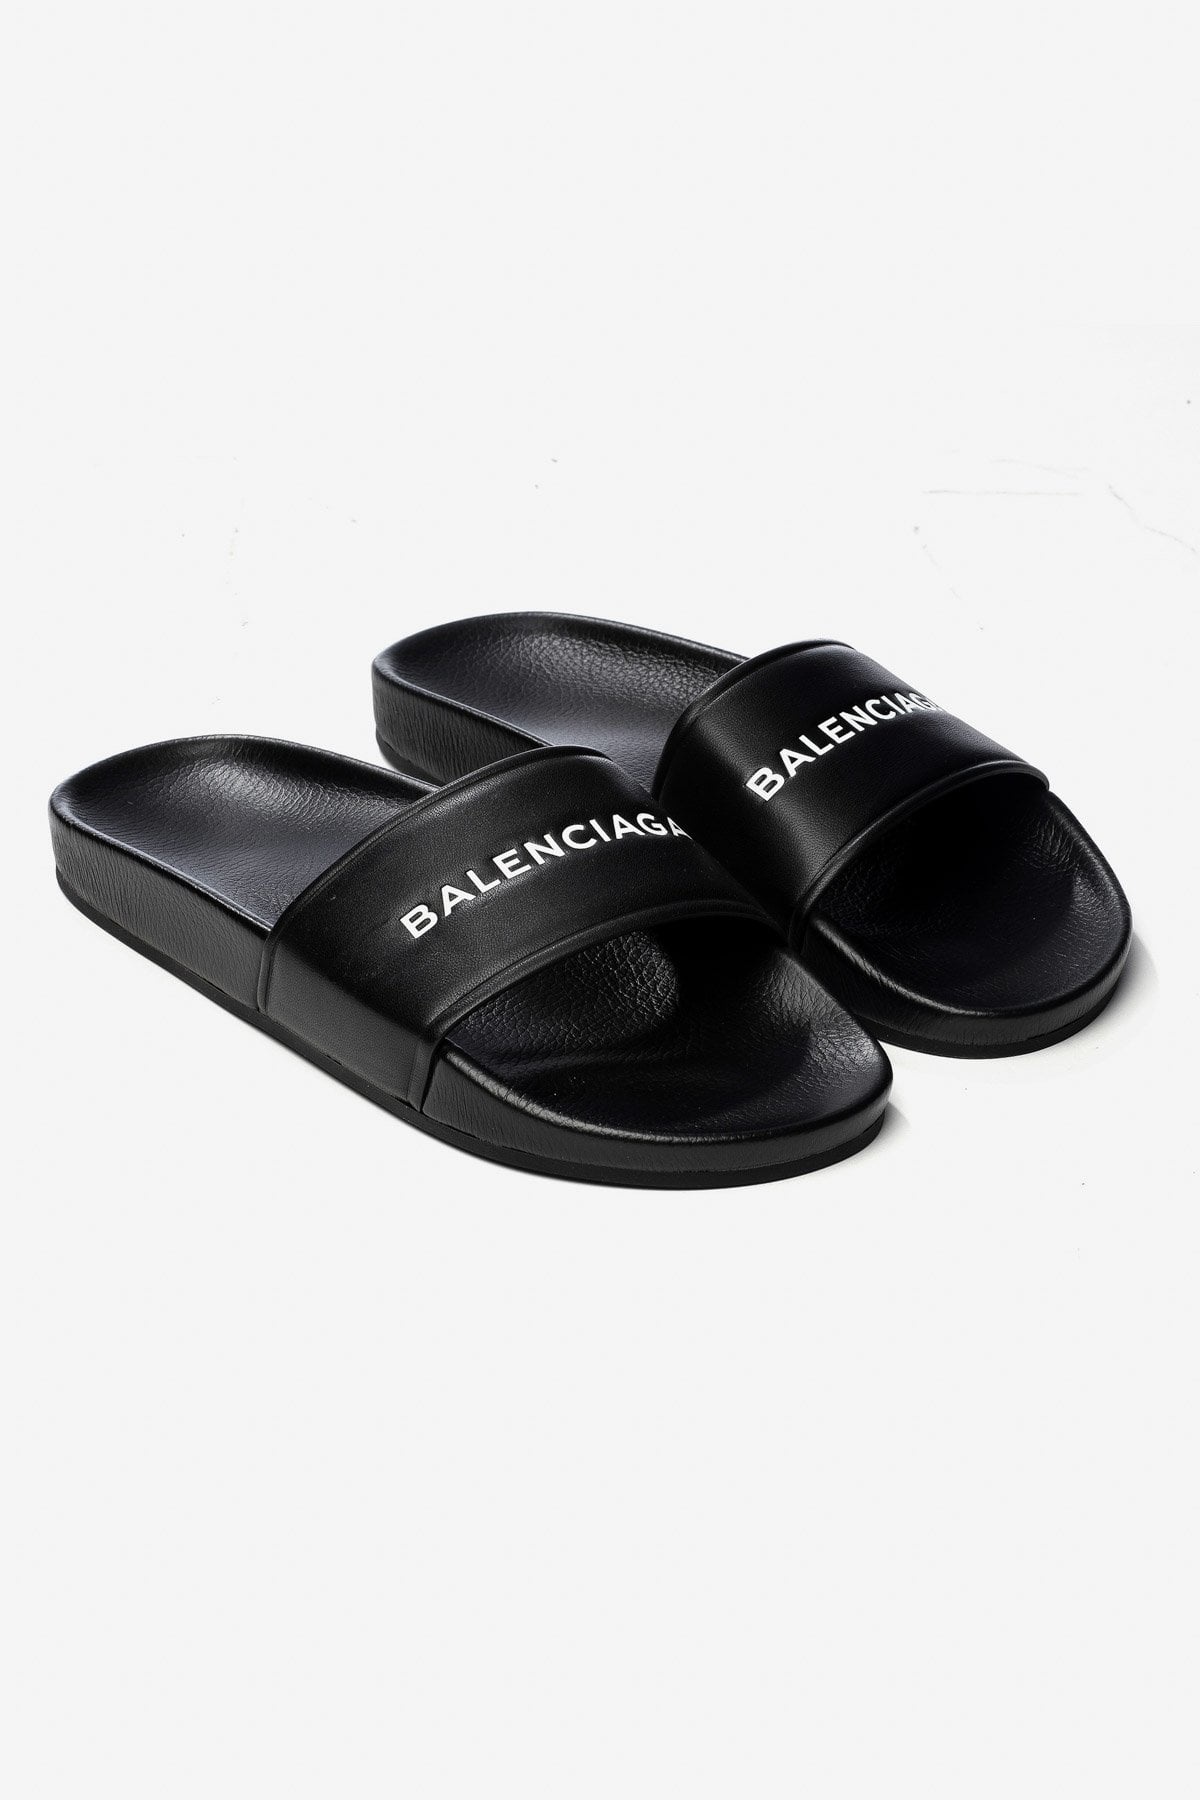 10MM PISCINE LOGO LEATHER SLIDE SANDALS